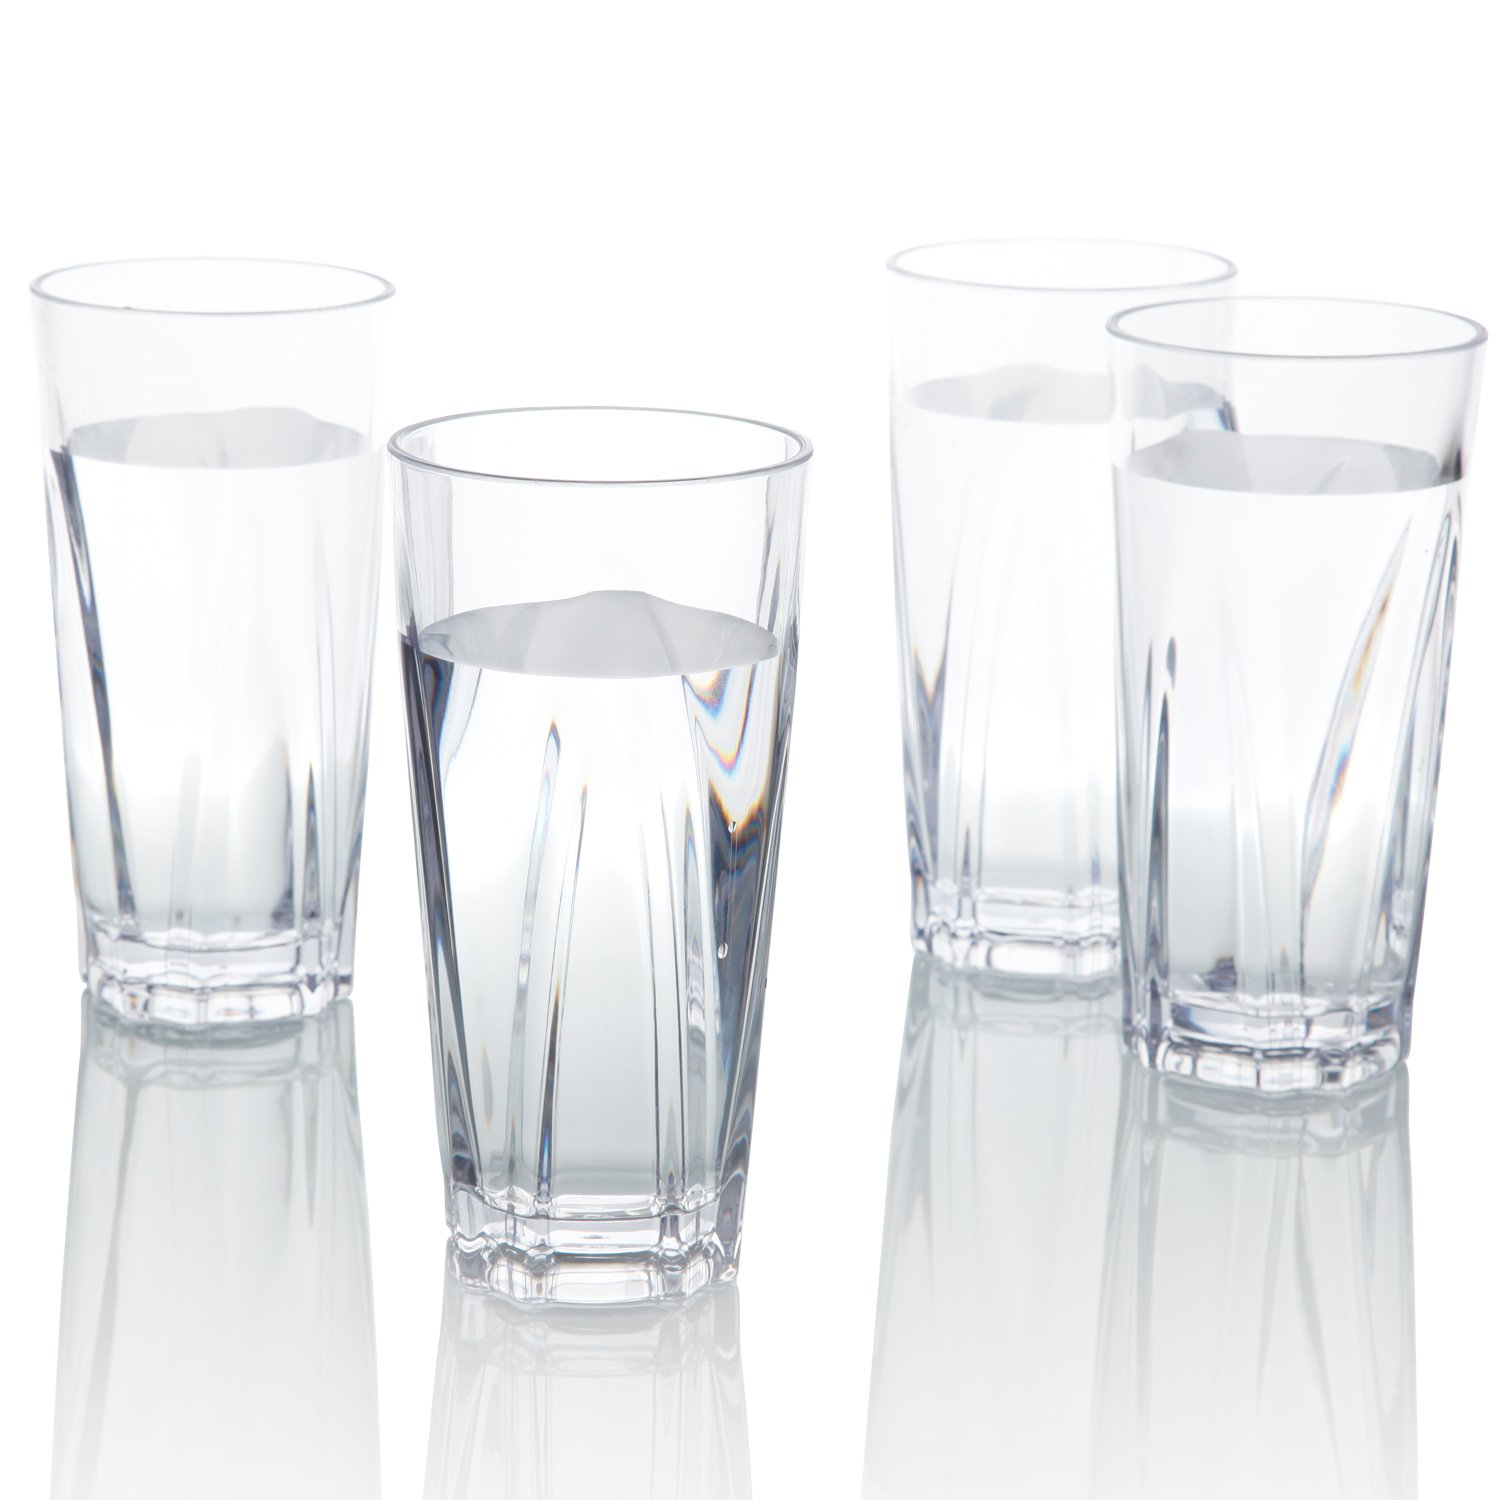 6f43f52b9472 Get Quotations · Plastic Water Tumblers, PEMOTech [4 Pack] 16 Oz Restaurant  Quality Clear Acrylic Drinking